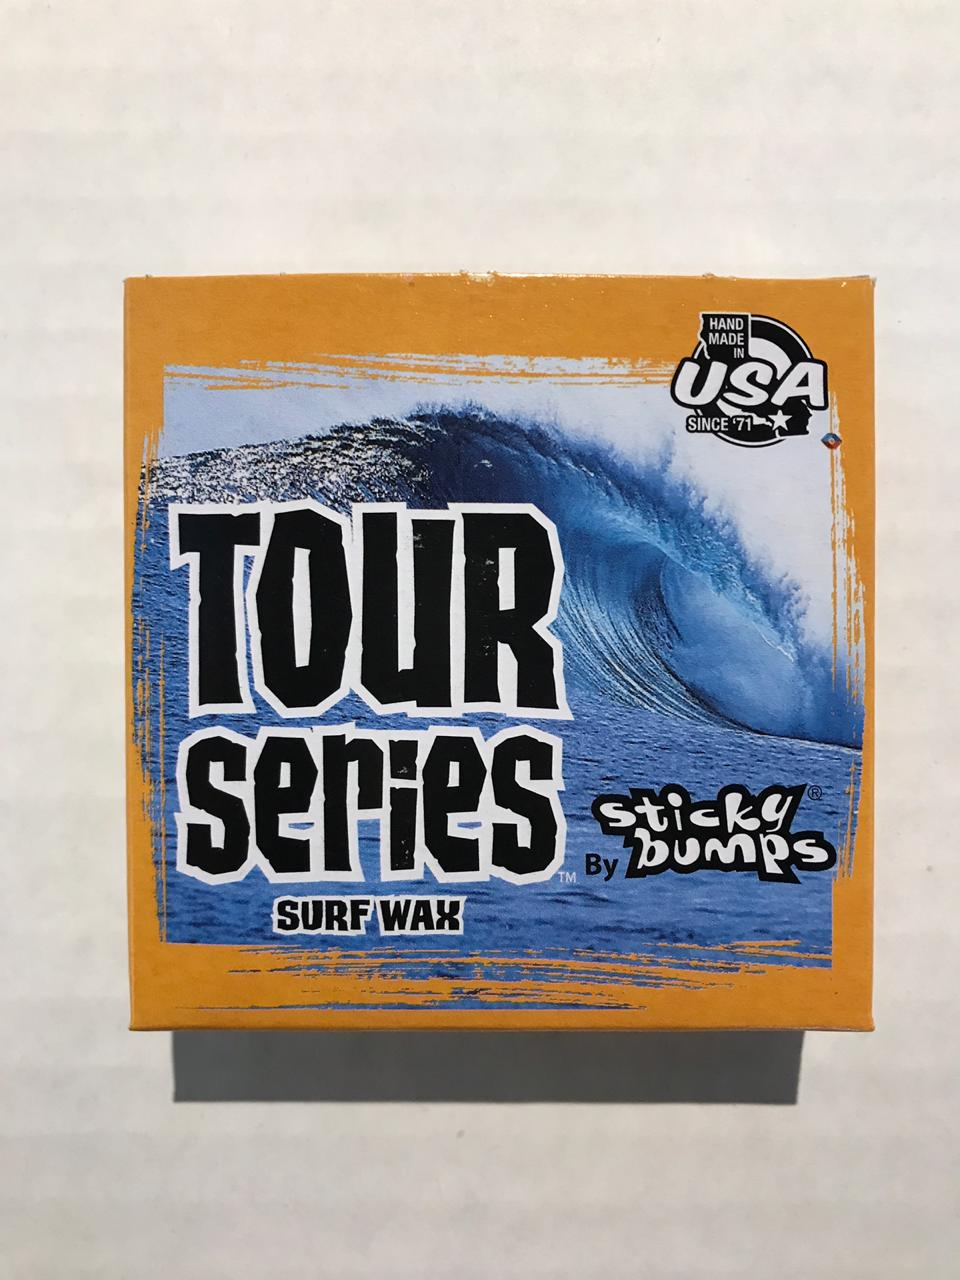 Tour Series / Sticky Bumps